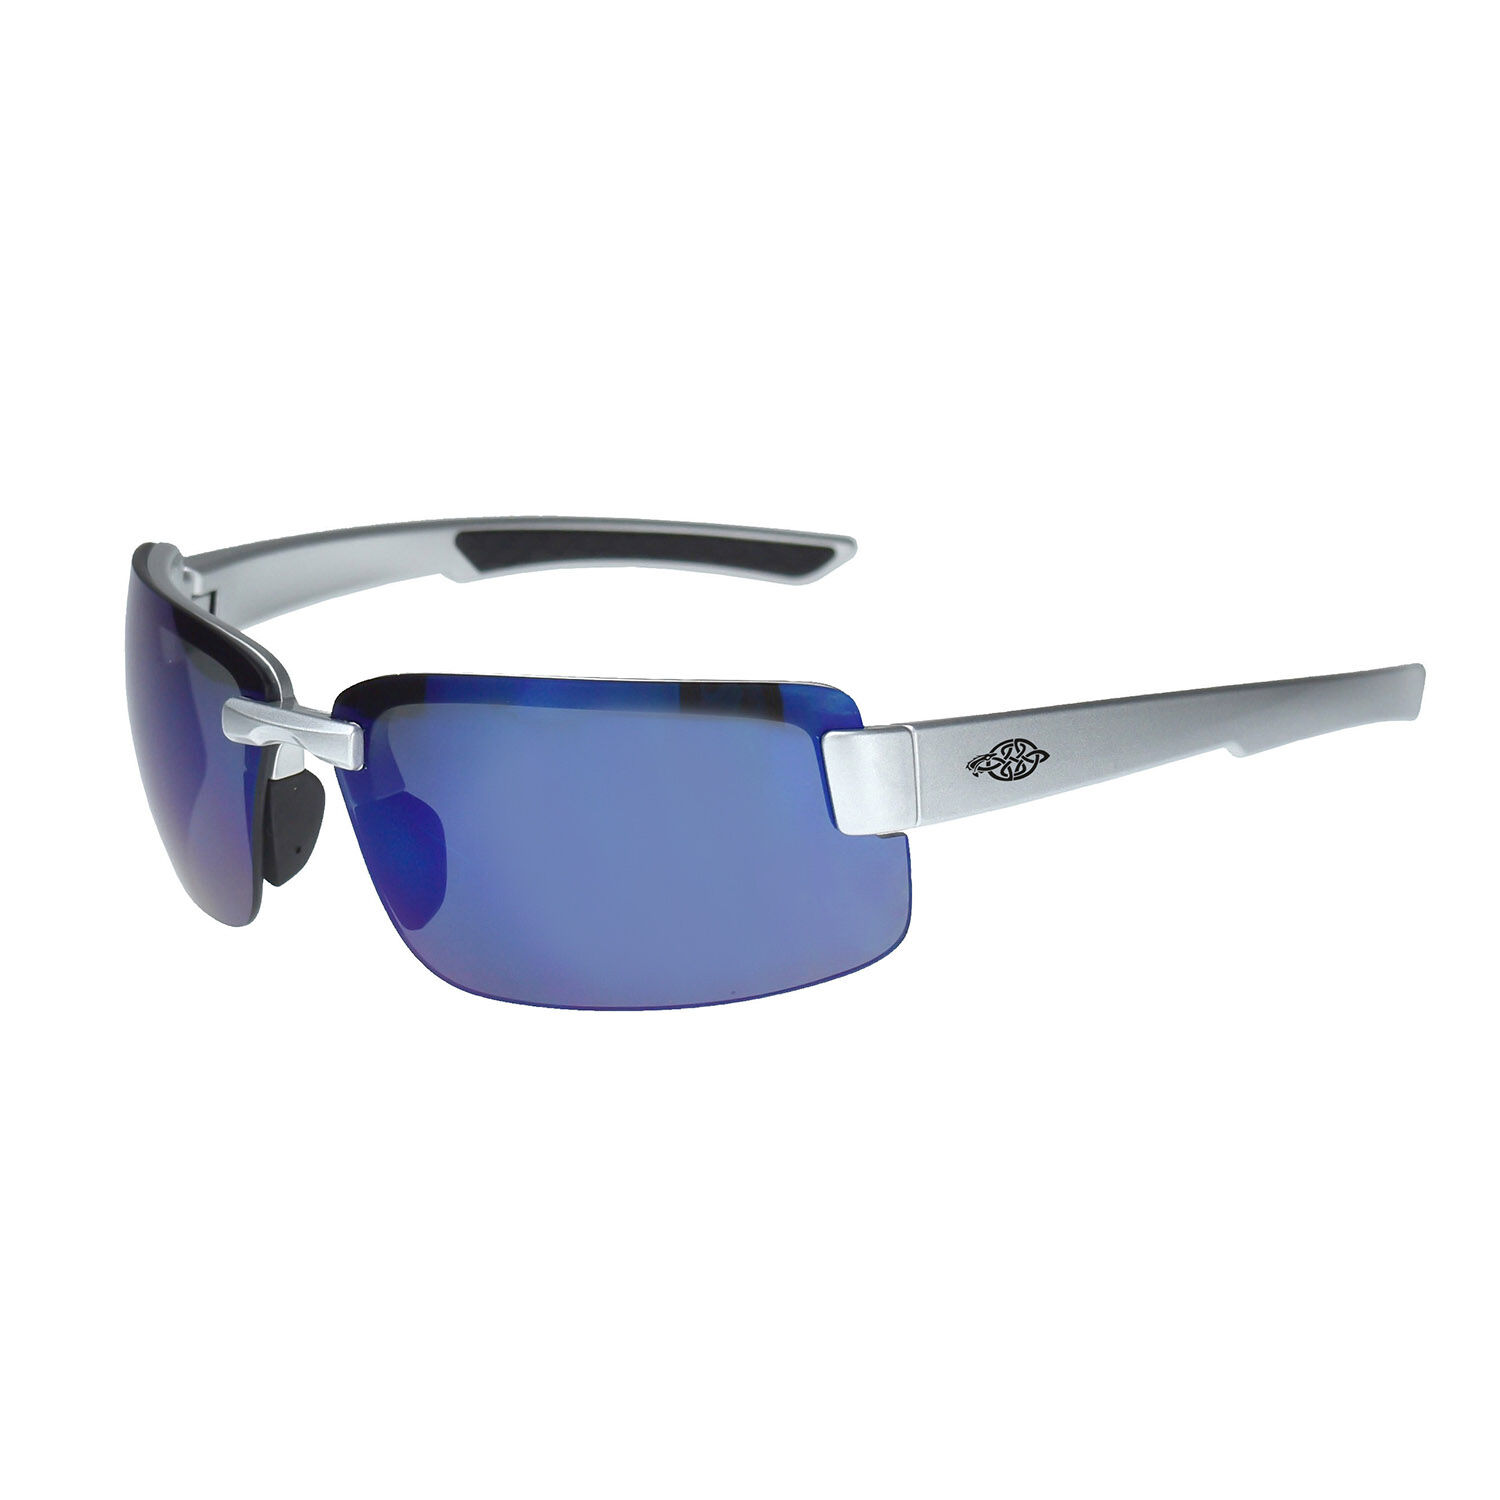 Crossfire By Radians 442208 ES6 Safety Glasses, Silver Gloss